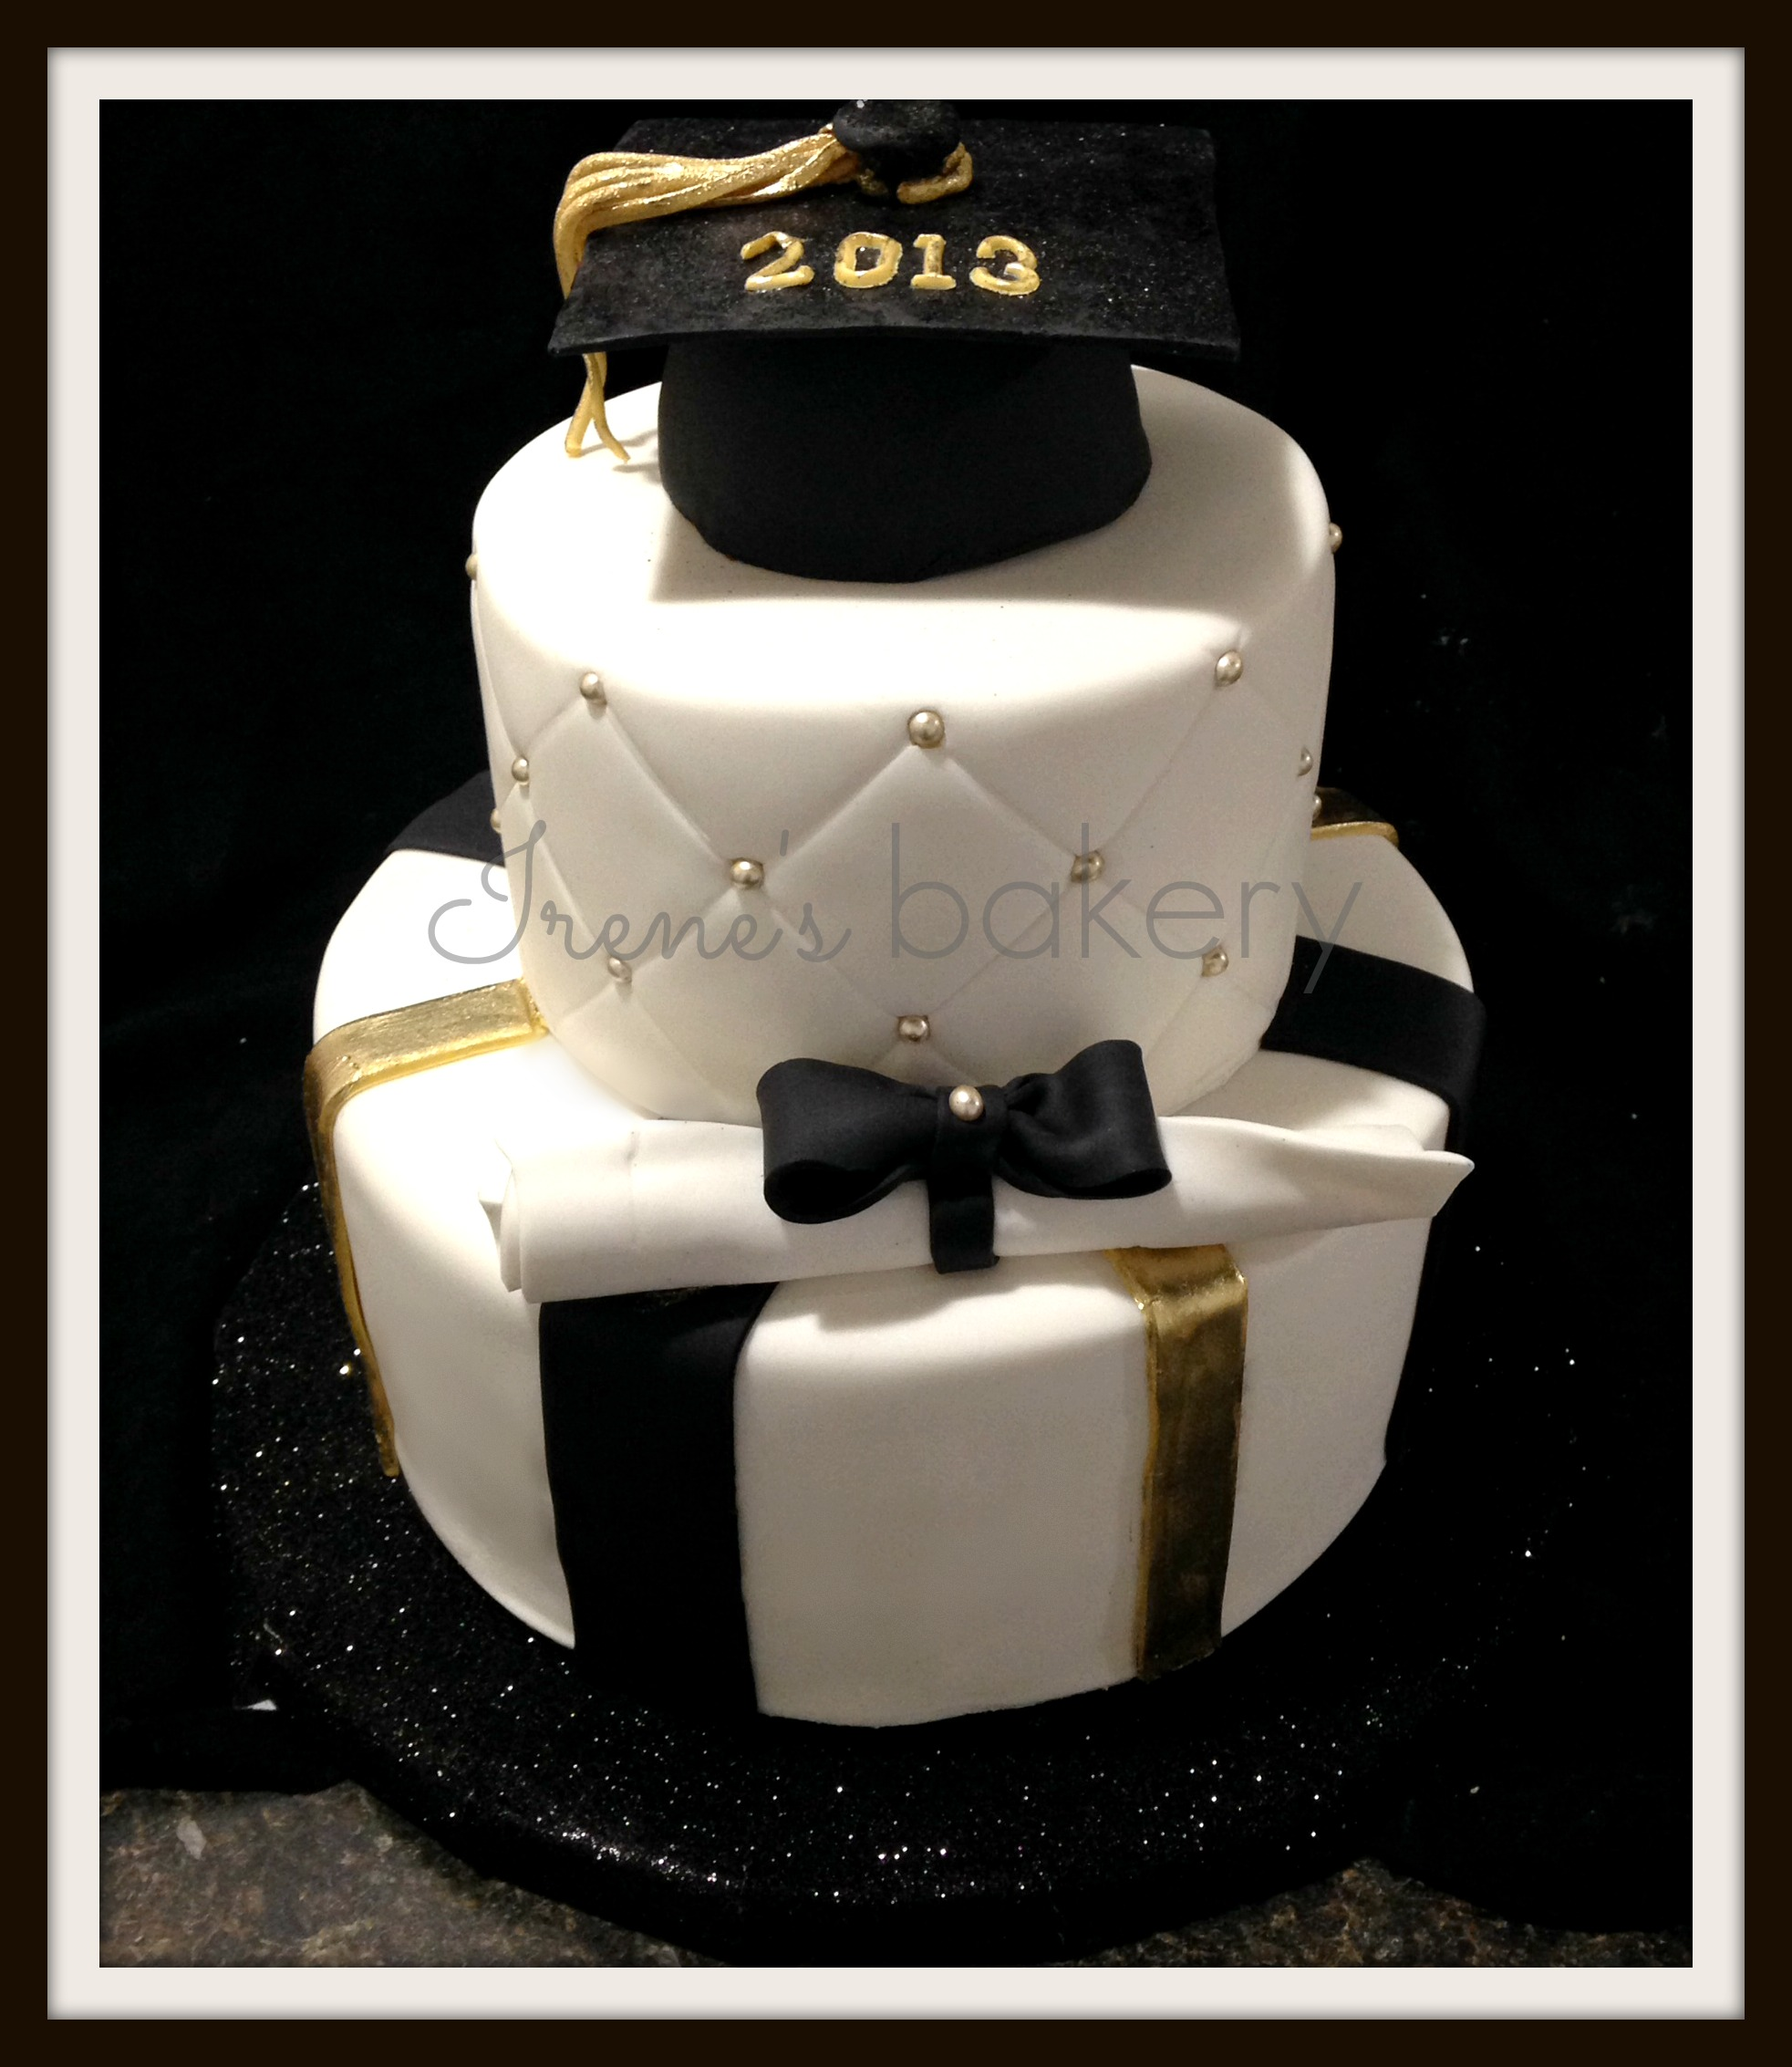 S And W >> Graduation Cakes - irenes bakery